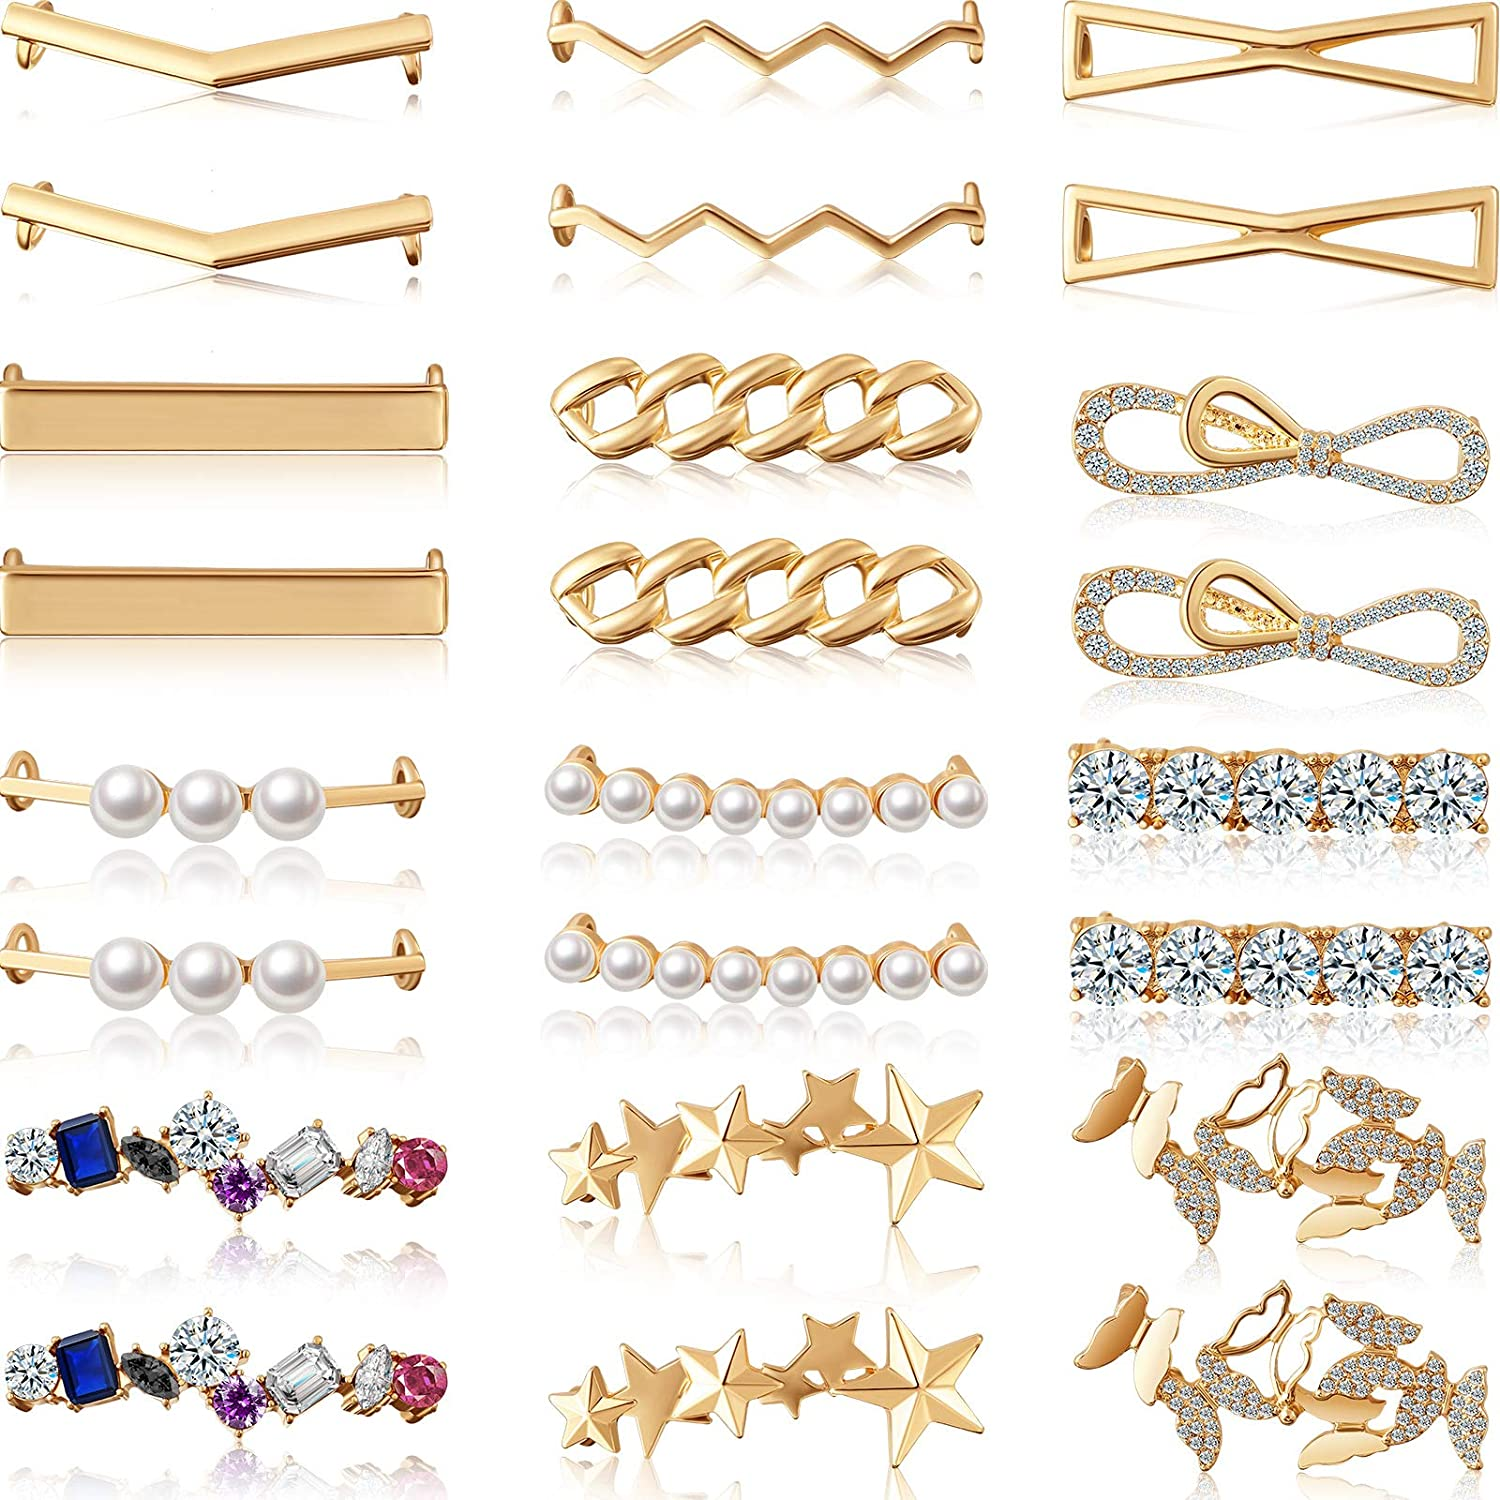 24 Pieces Shoelaces Free shipping anywhere trend rank in the nation Clips Decorations Cha Pearl Faux Rhinestones